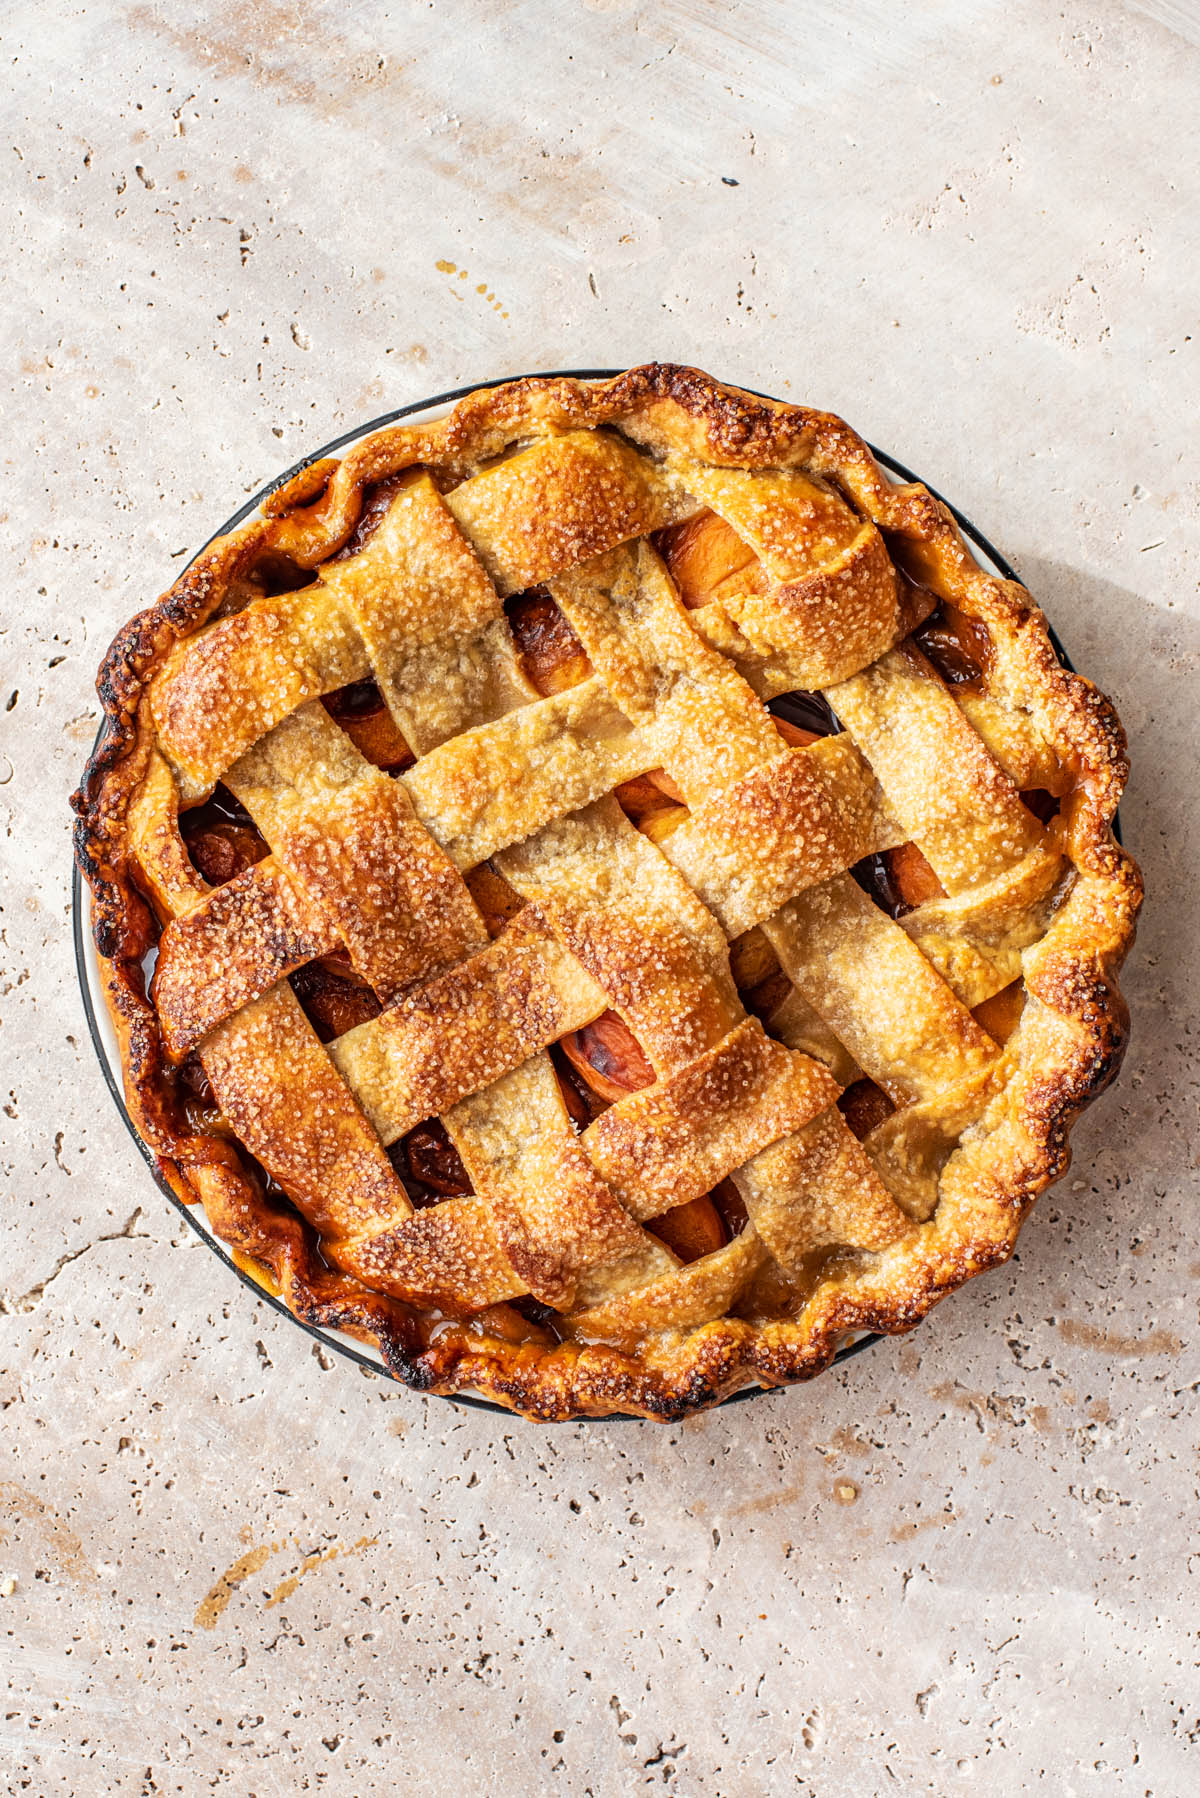 Top down view of apricot pie with a lattice crust.